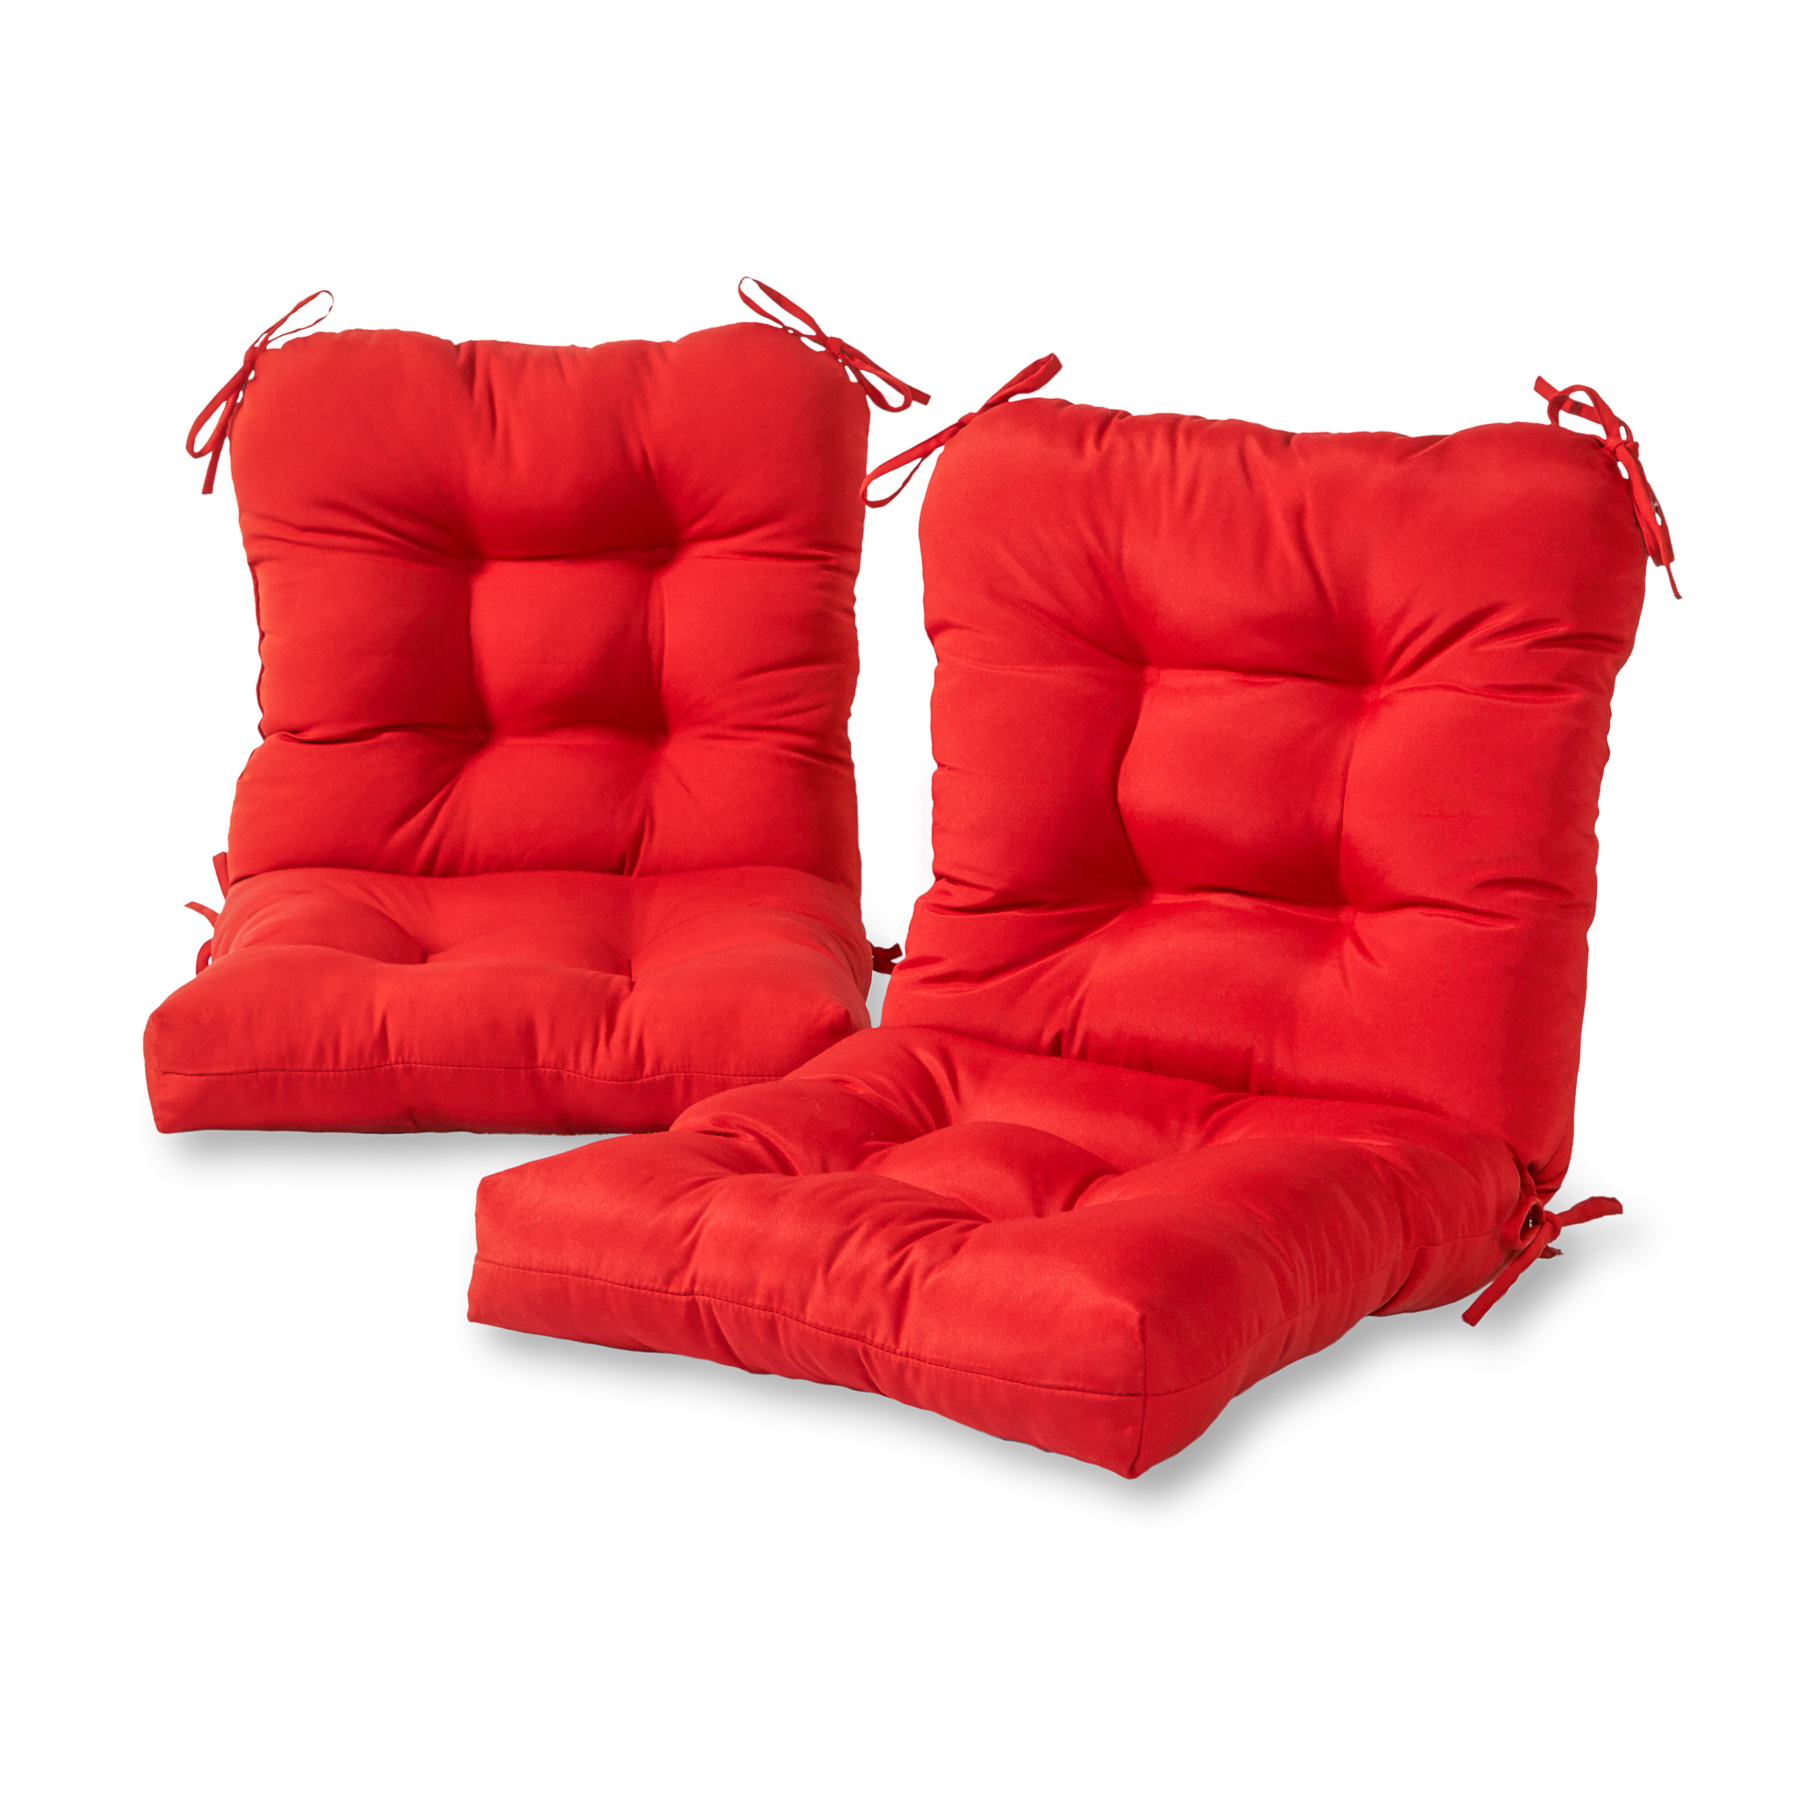 21 X Furniture 21 Outdoor Cushions